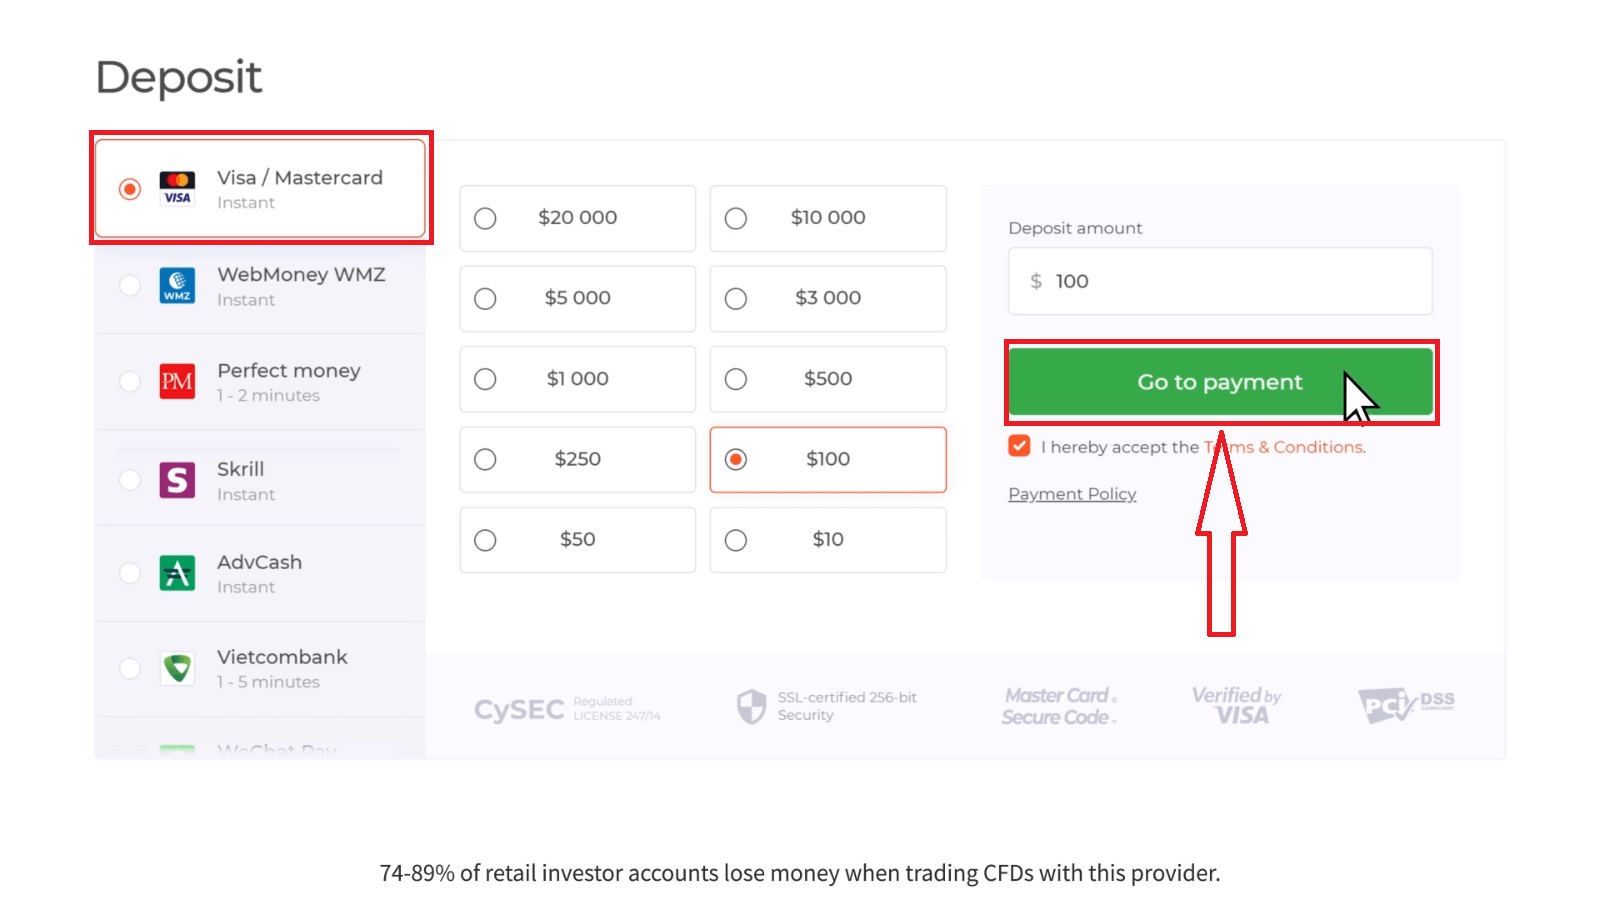 How to Withdraw and Make a Deposit Money in IQ Option